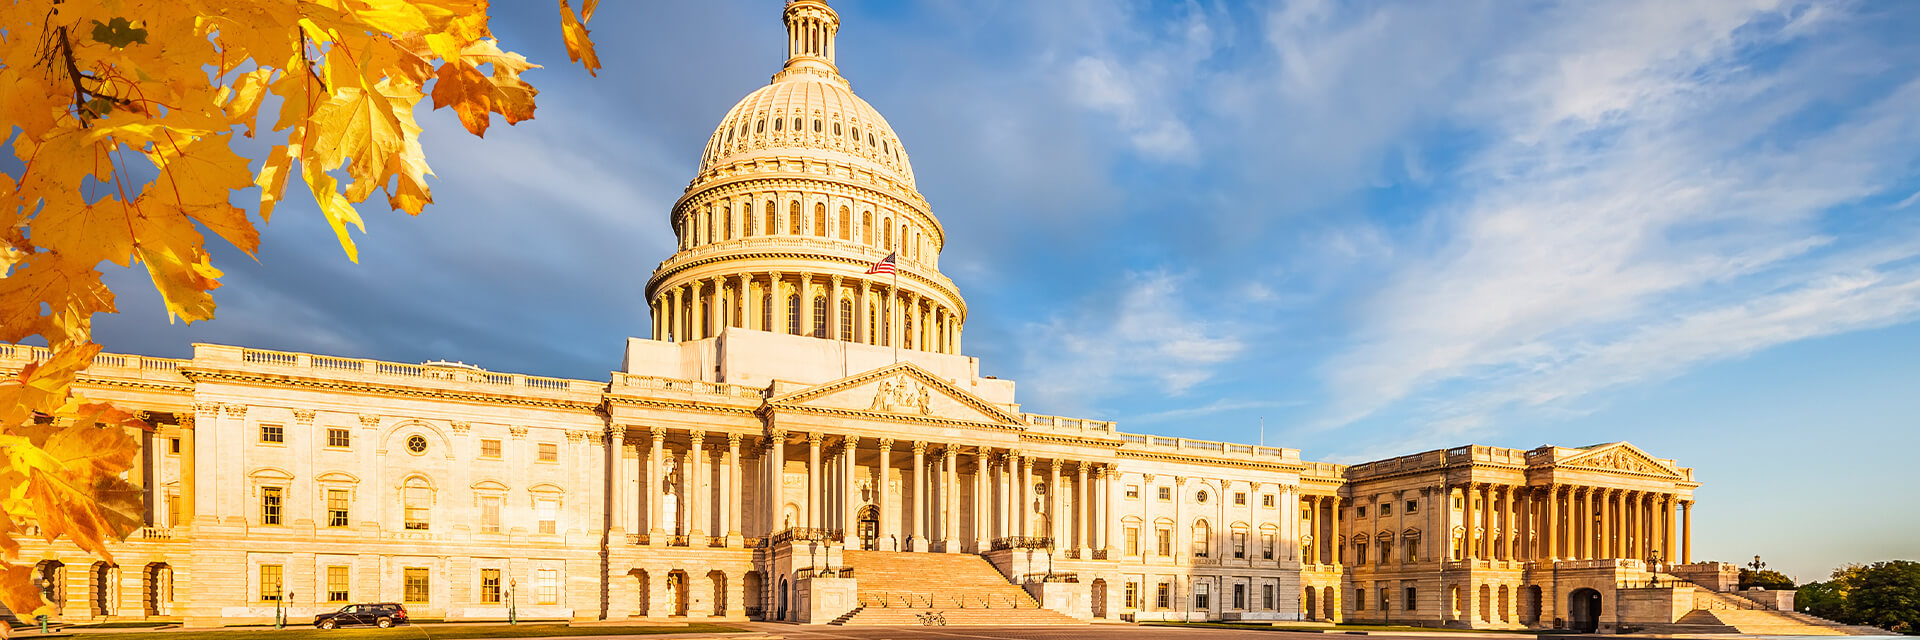 Tax reform from the House and Senate bills contain new business provisions affecting corporate tax rates, the AMT and NOL deductions.